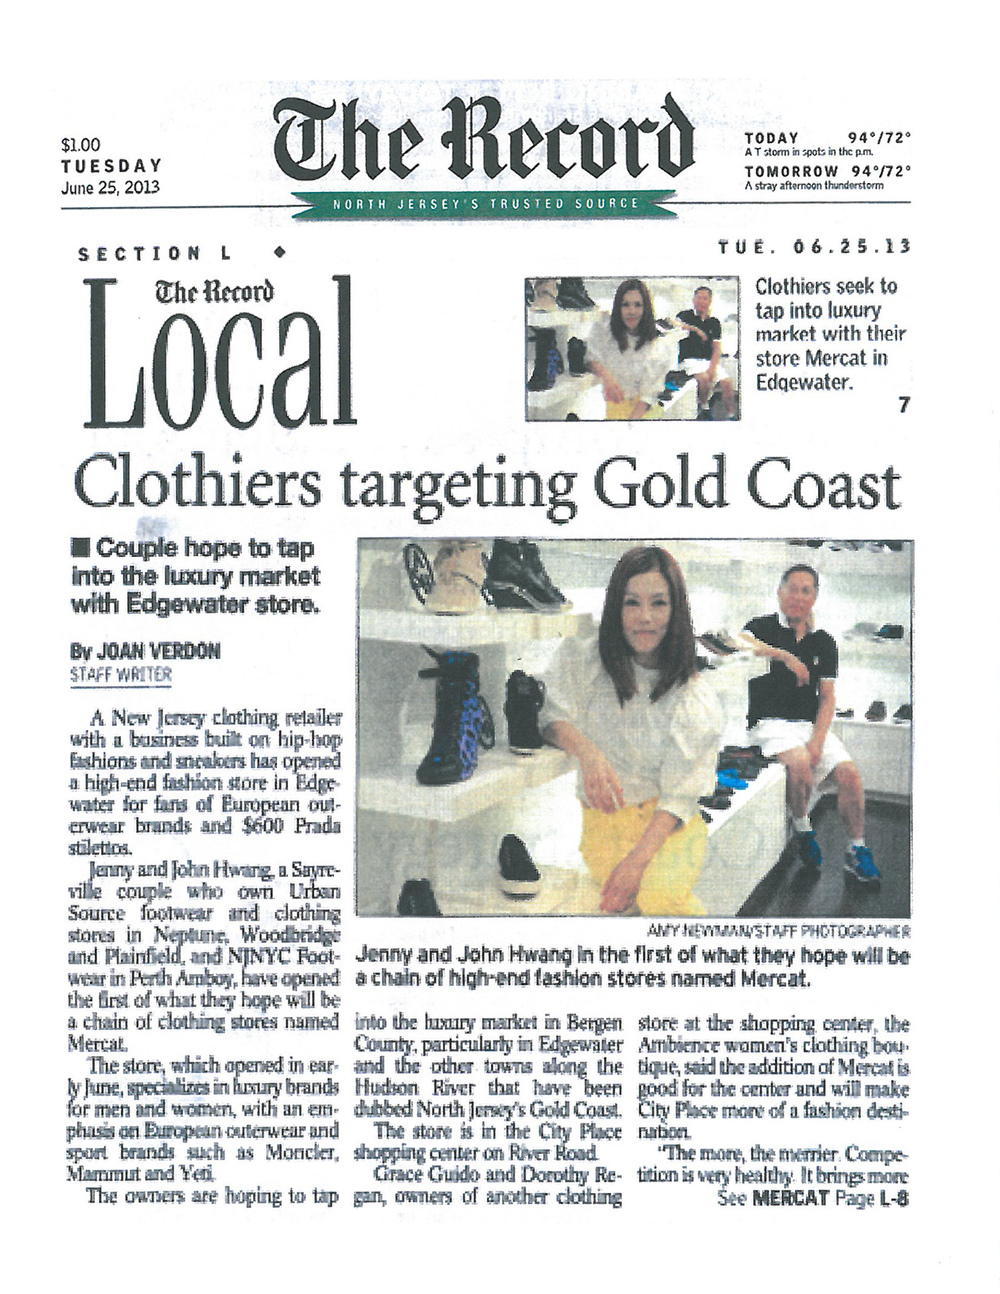 Ran-H Corporation / Mercat on The Record News Paper :  http://www.northjersey.com/news/edgewater-clothing-store-to-focus-on-luxury-brands-1.605084